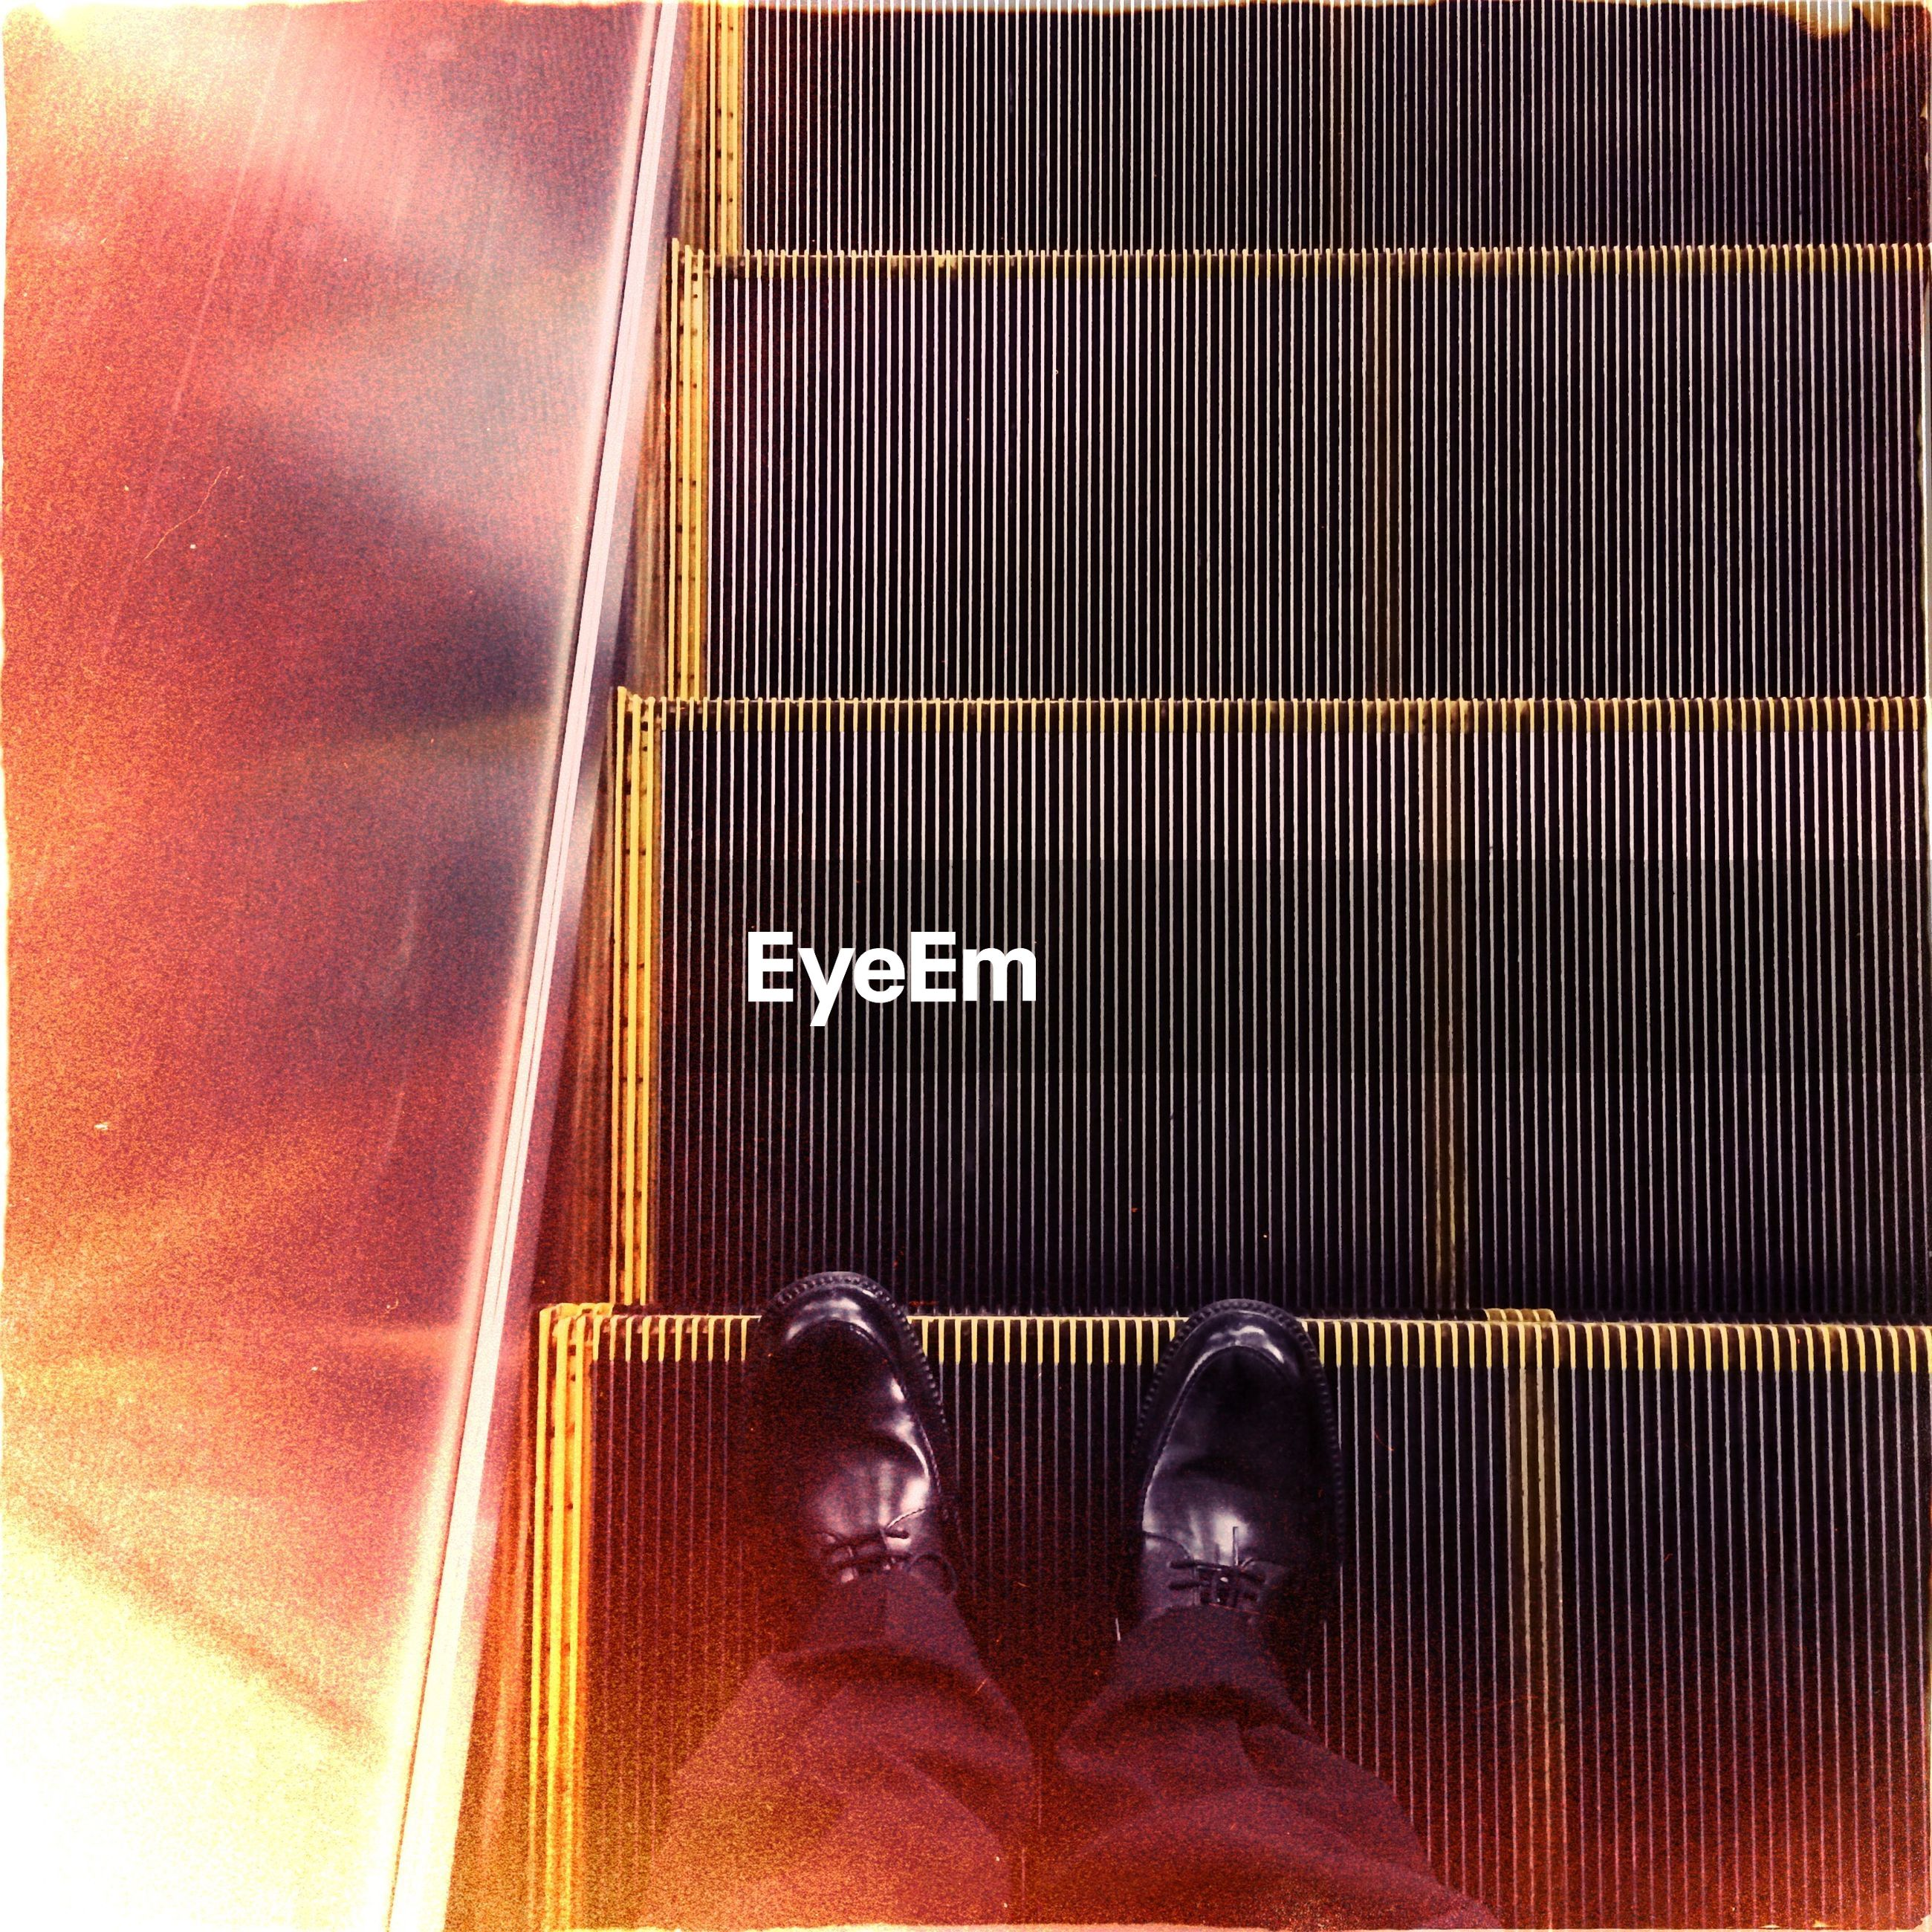 Low section view of man on escalator